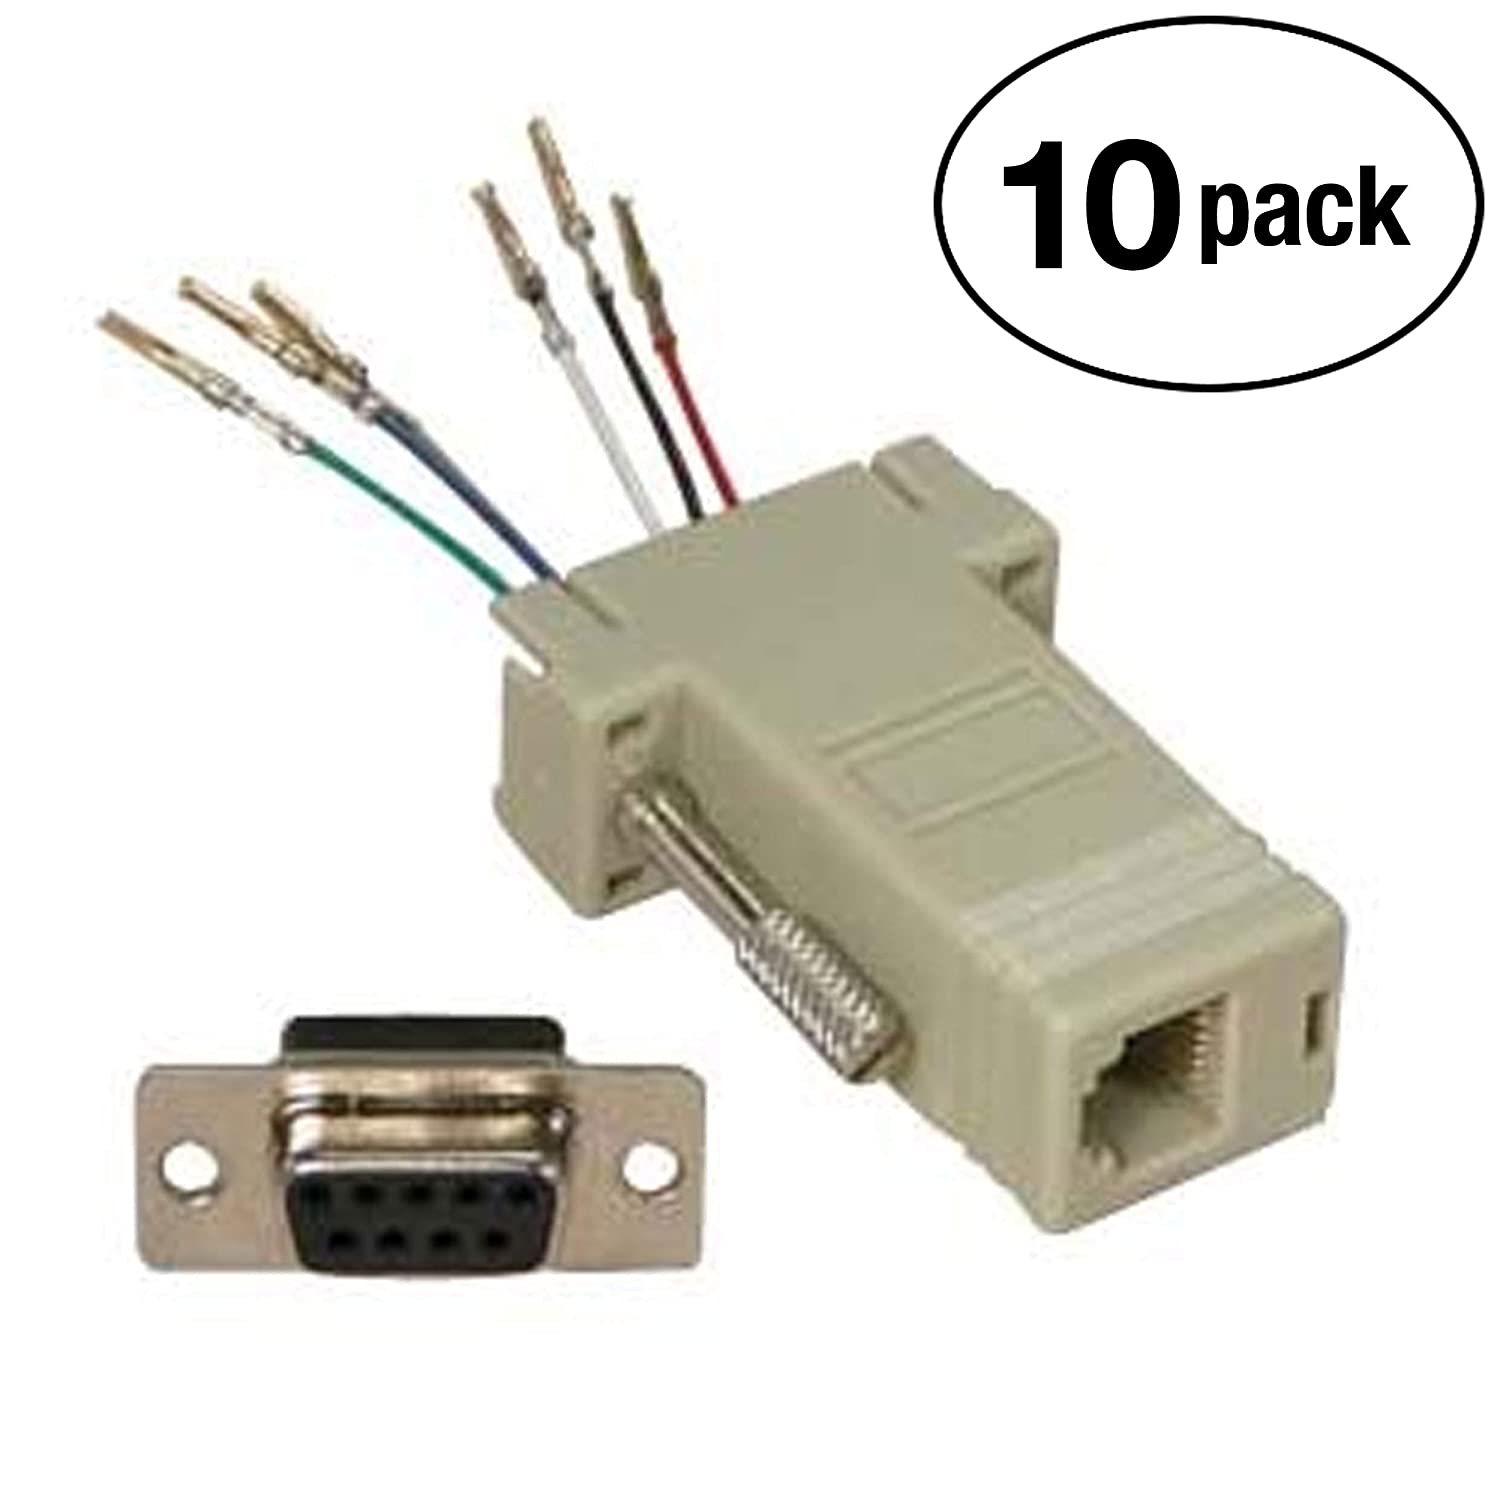 amazon com: installerparts db9 female to rj11/12 (6 wire) modular adapter  ivory - gold plated: electronics